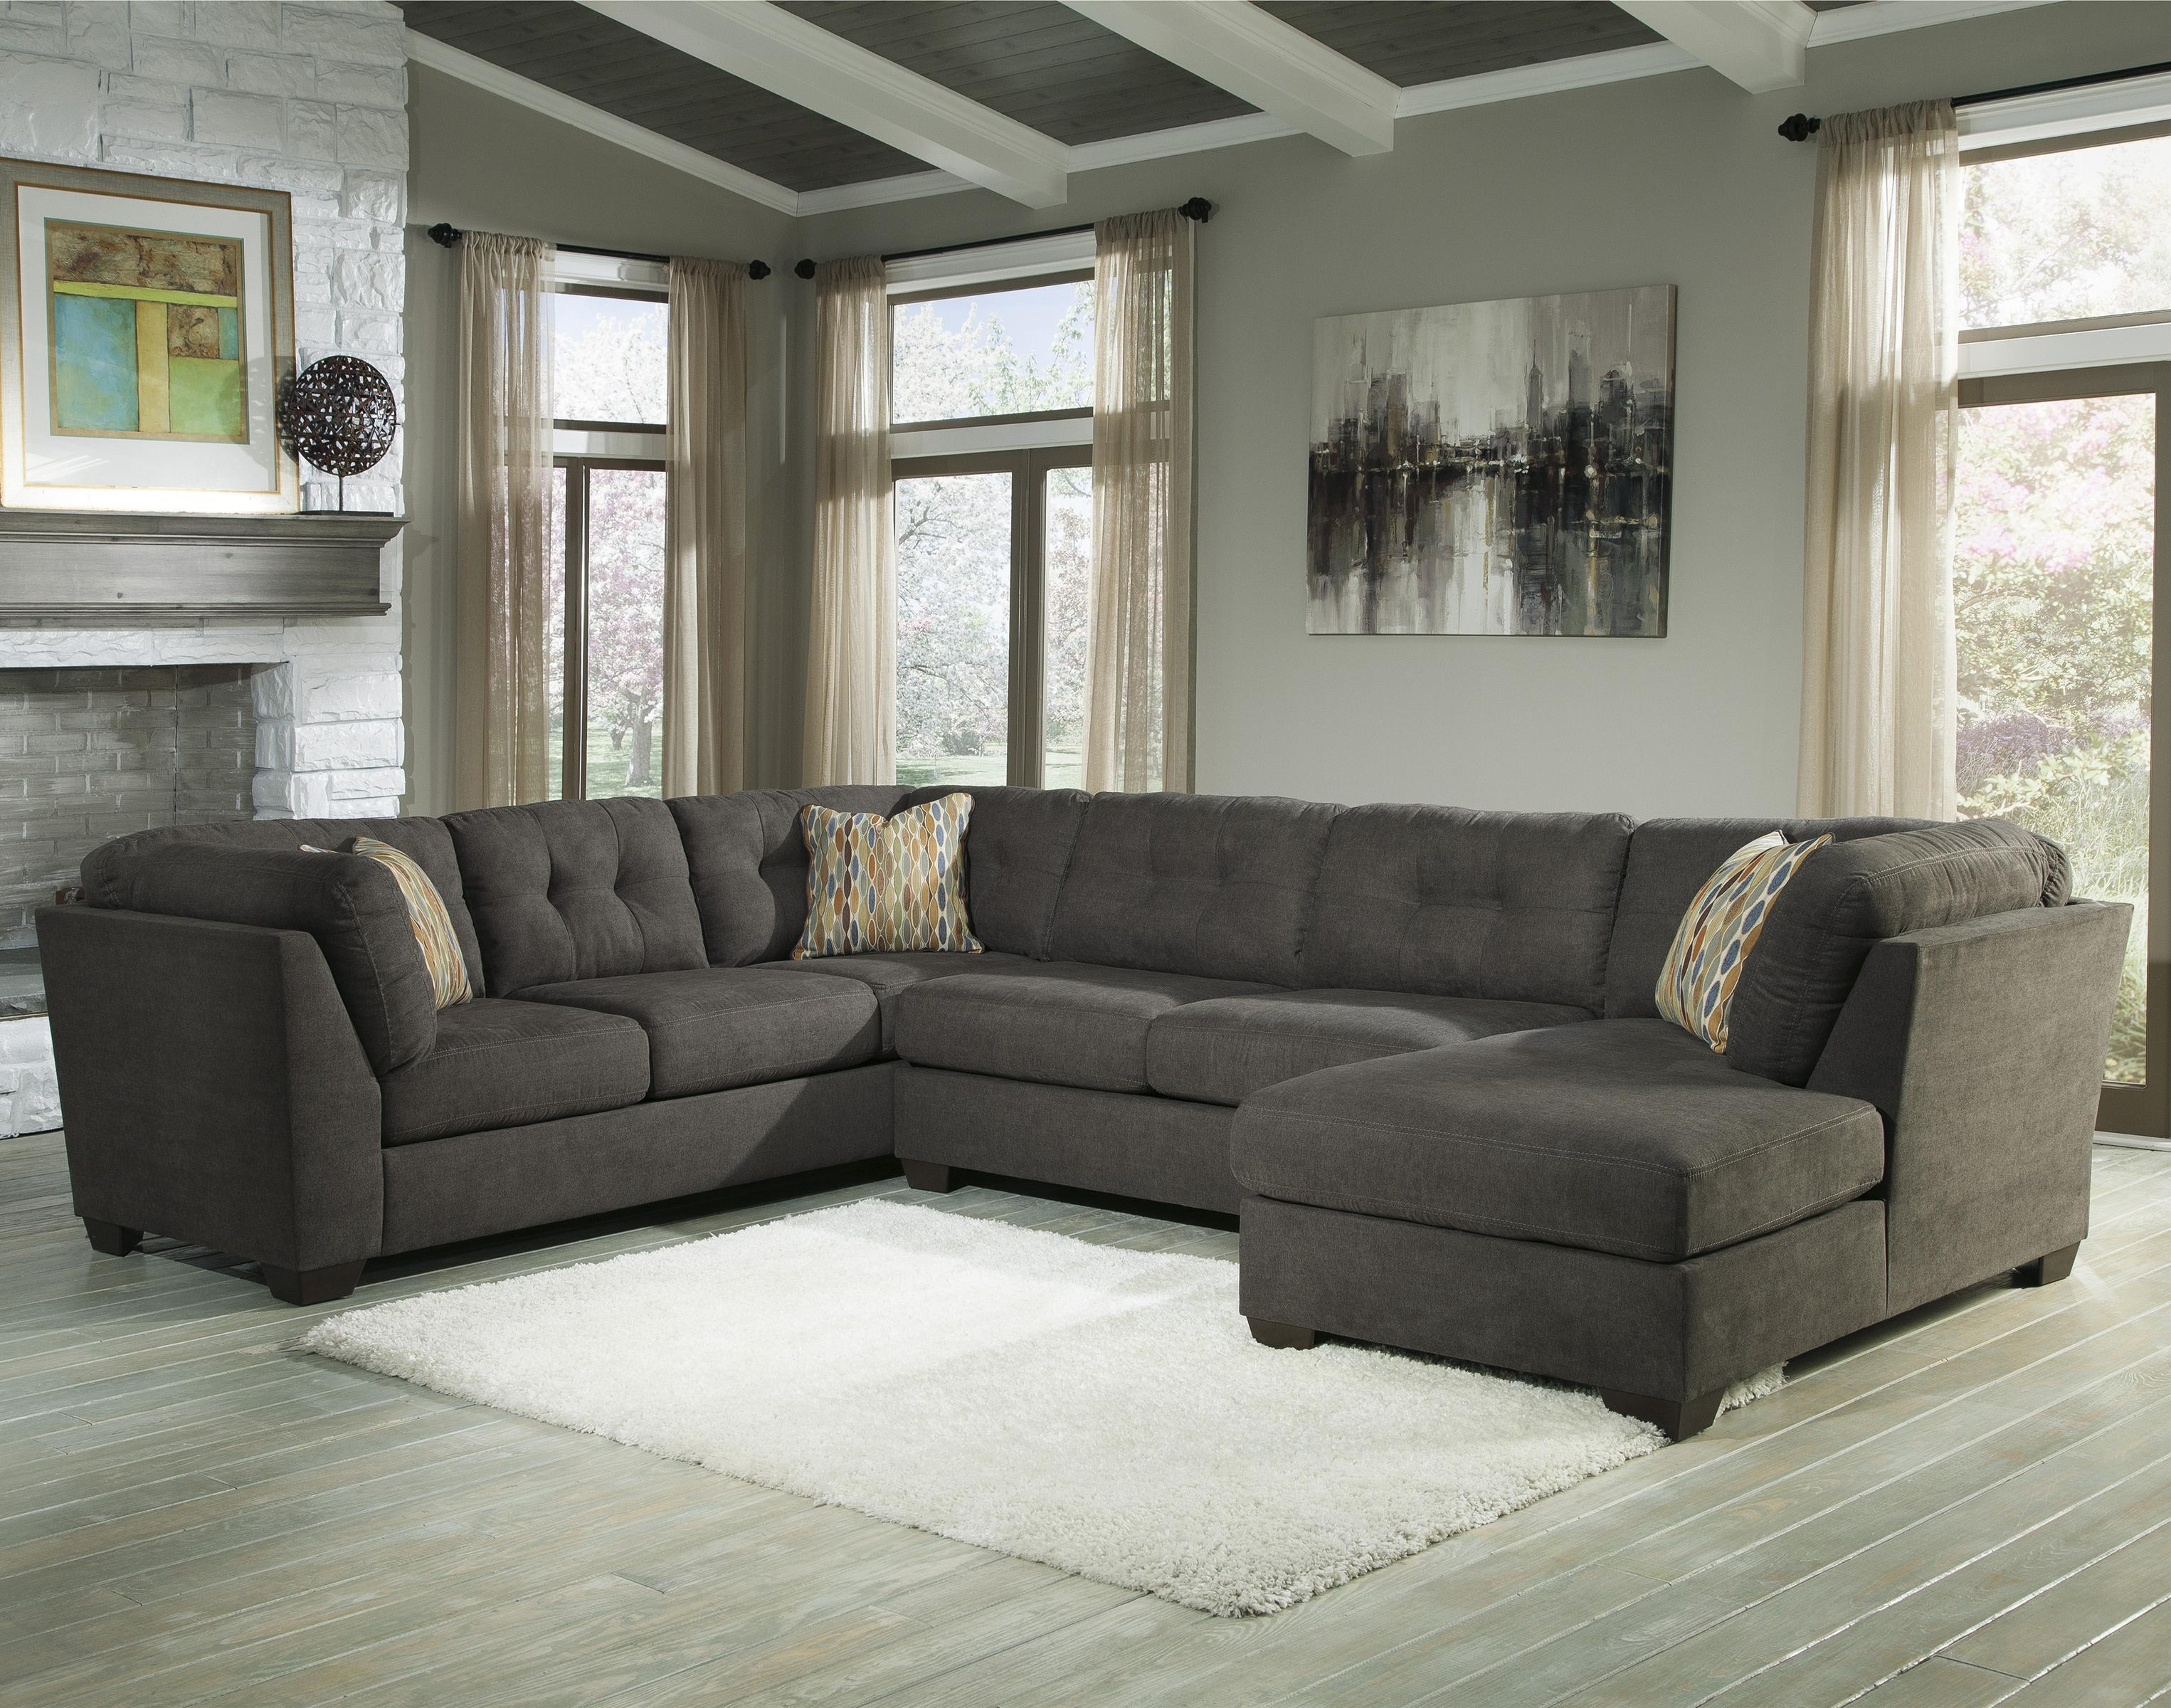 Benchcraft Delta City – Steel 3 Piece Modular Sectional With Right Throughout Ashley Curved Sectional (View 11 of 15)